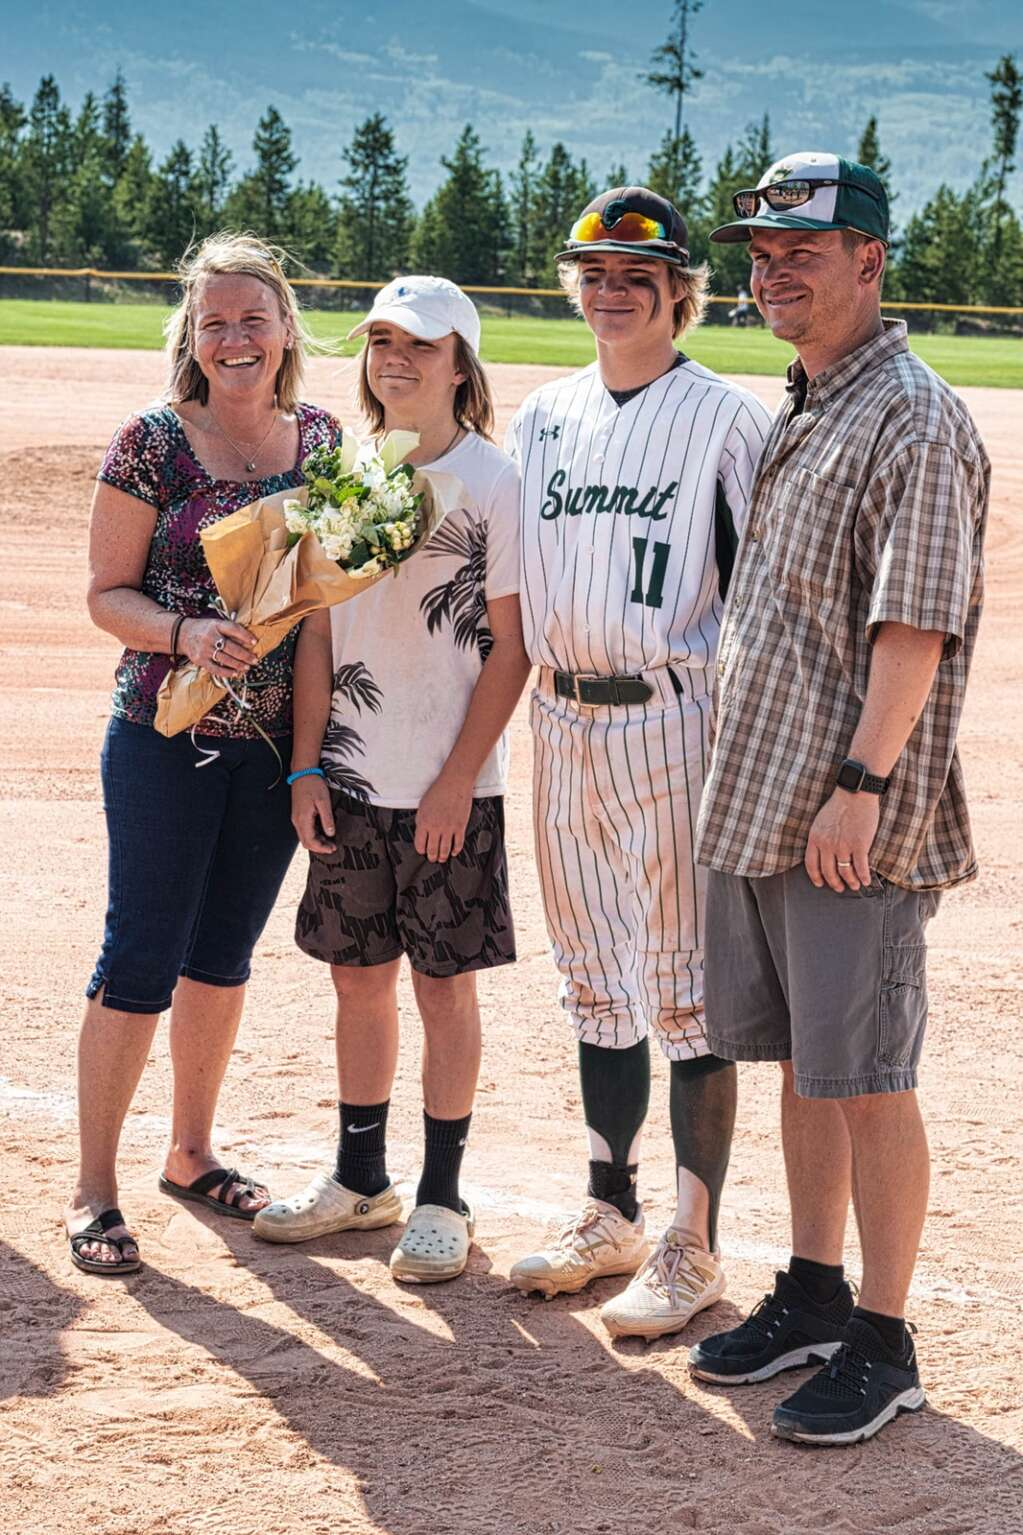 Tigers senior Zach Misch poses for a senior day photo with his family during Summit's pair of wins over Steamboat Springs at the Frisco Peninsula Recreation Area in Frisco on Tuesday. | Photo by Joel Wexler / Rocky Mountain.Photography